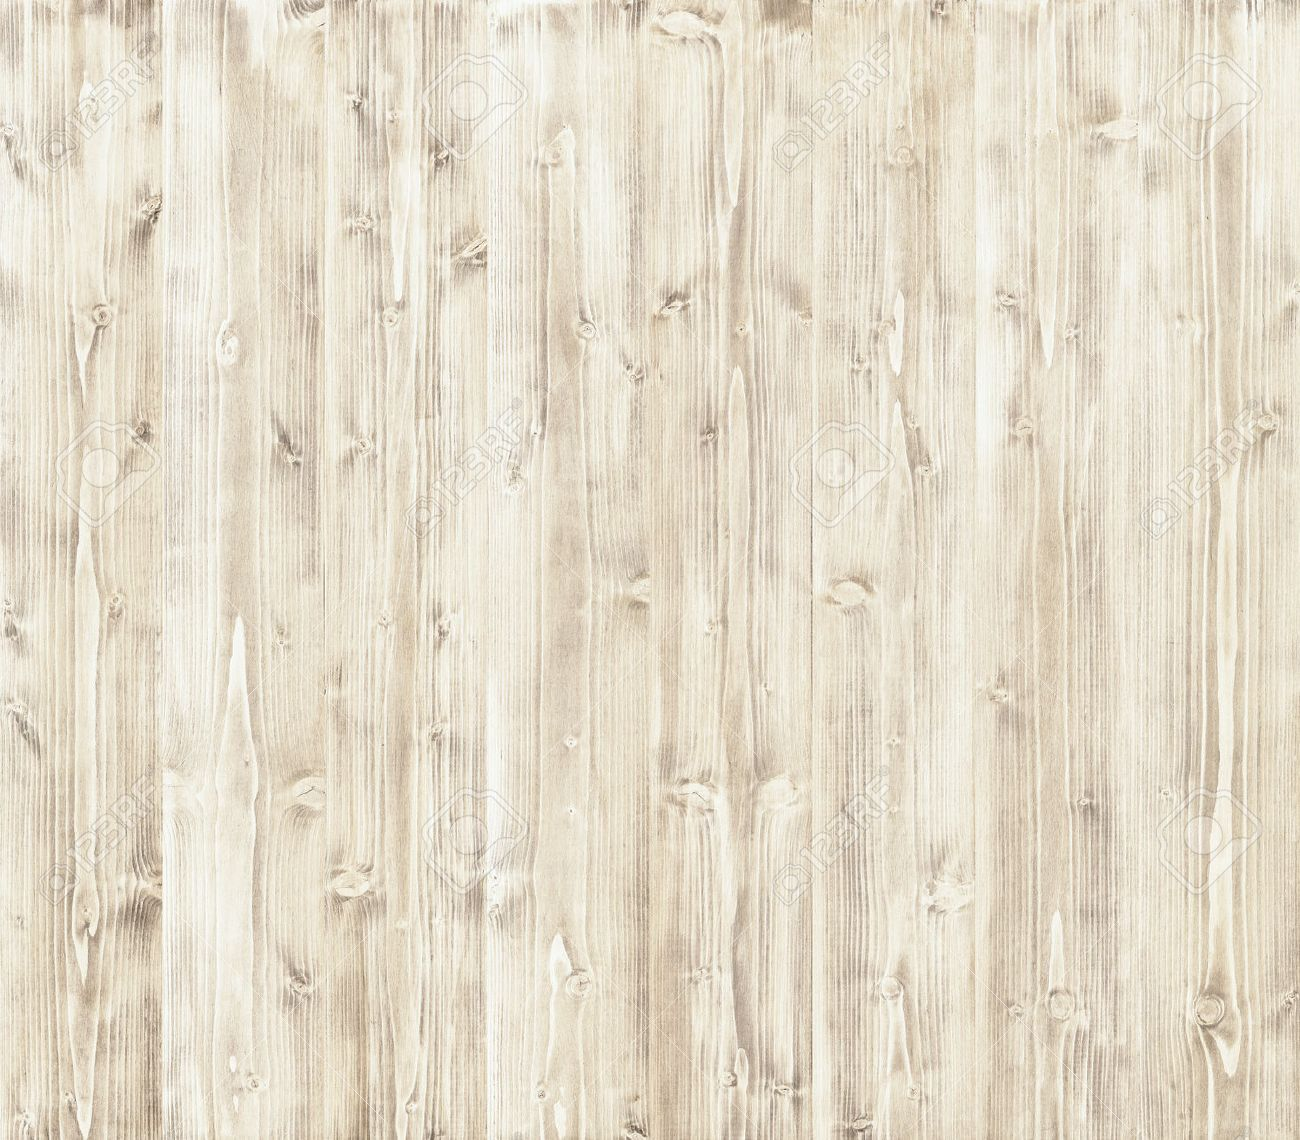 Wooden texture, light wood background Stock Photo - 48055082